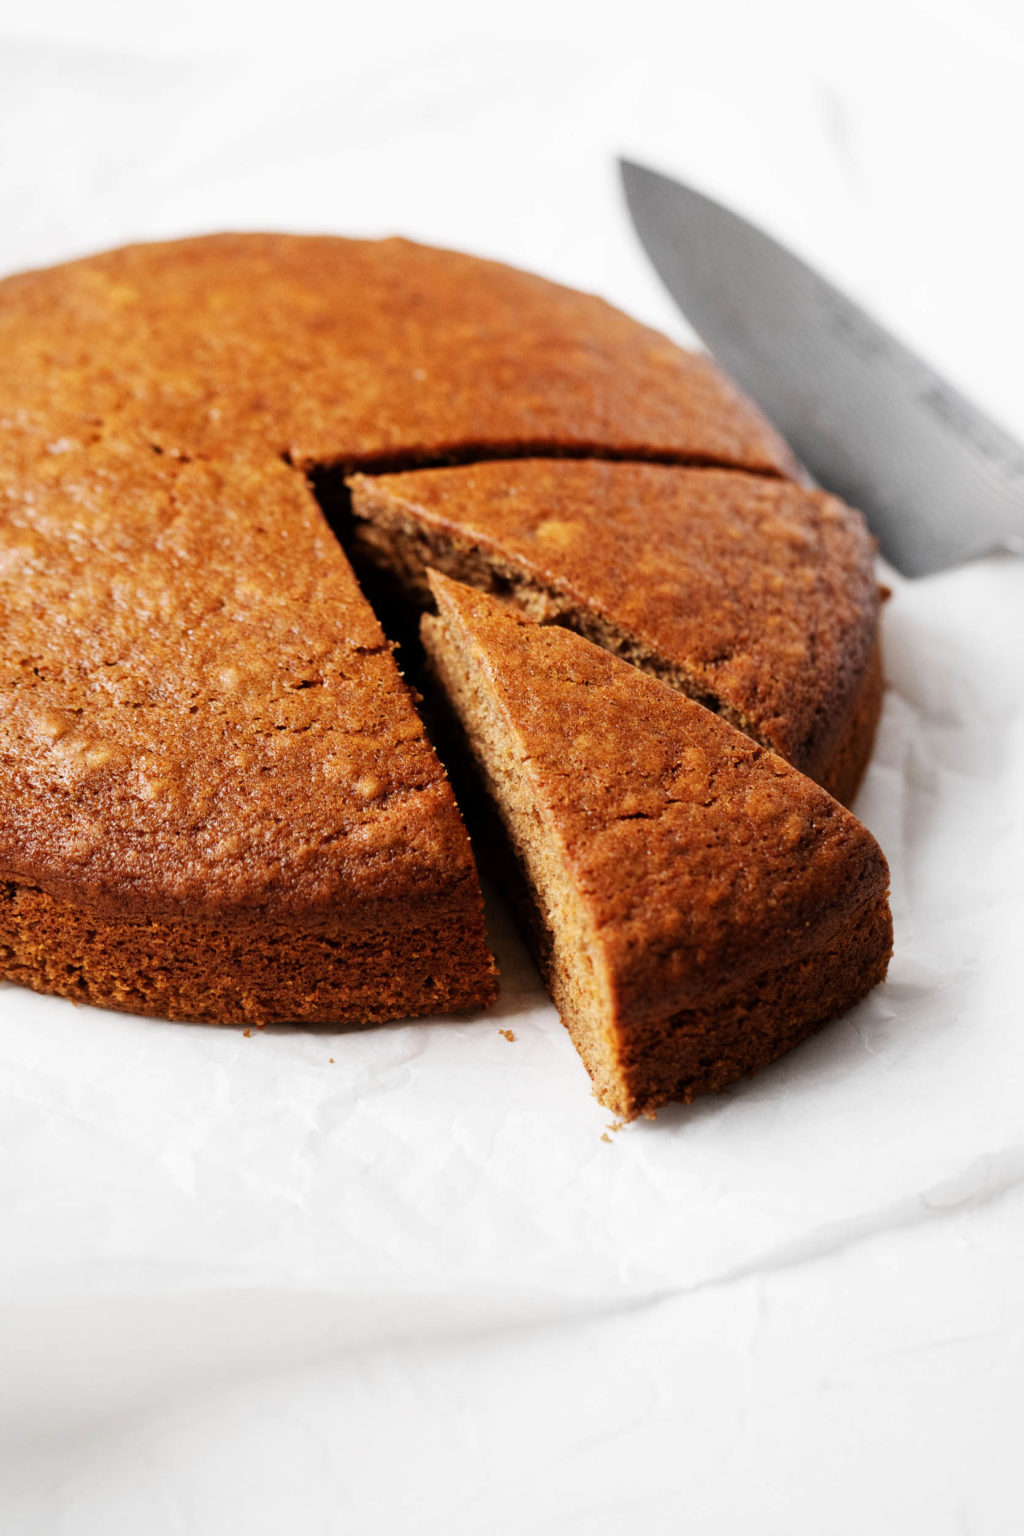 A round, golden brown gingerbread cake is being cut into slices.